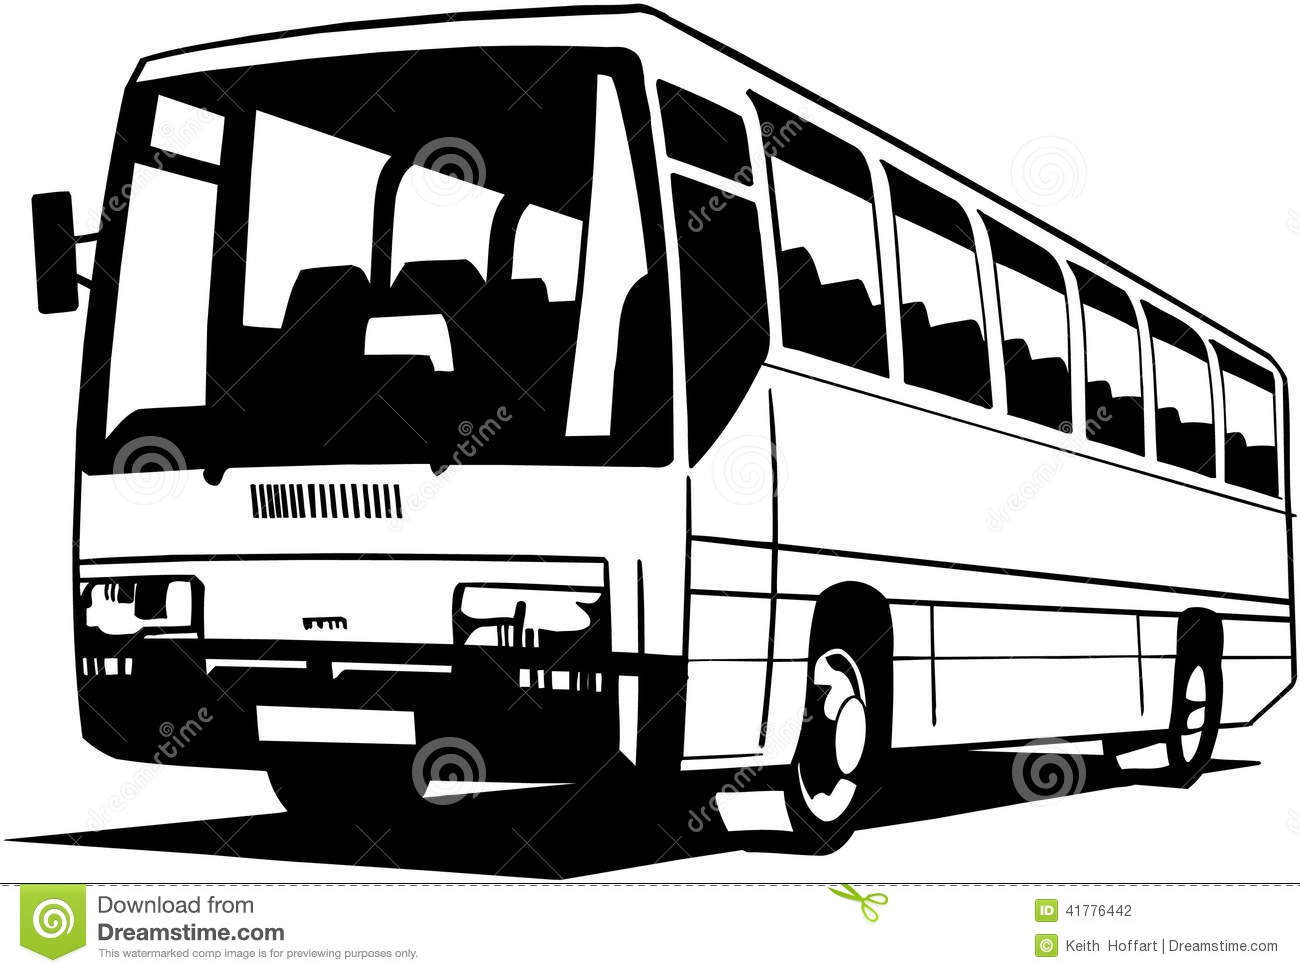 Bus Cartoon Clipart - Clipart Kid